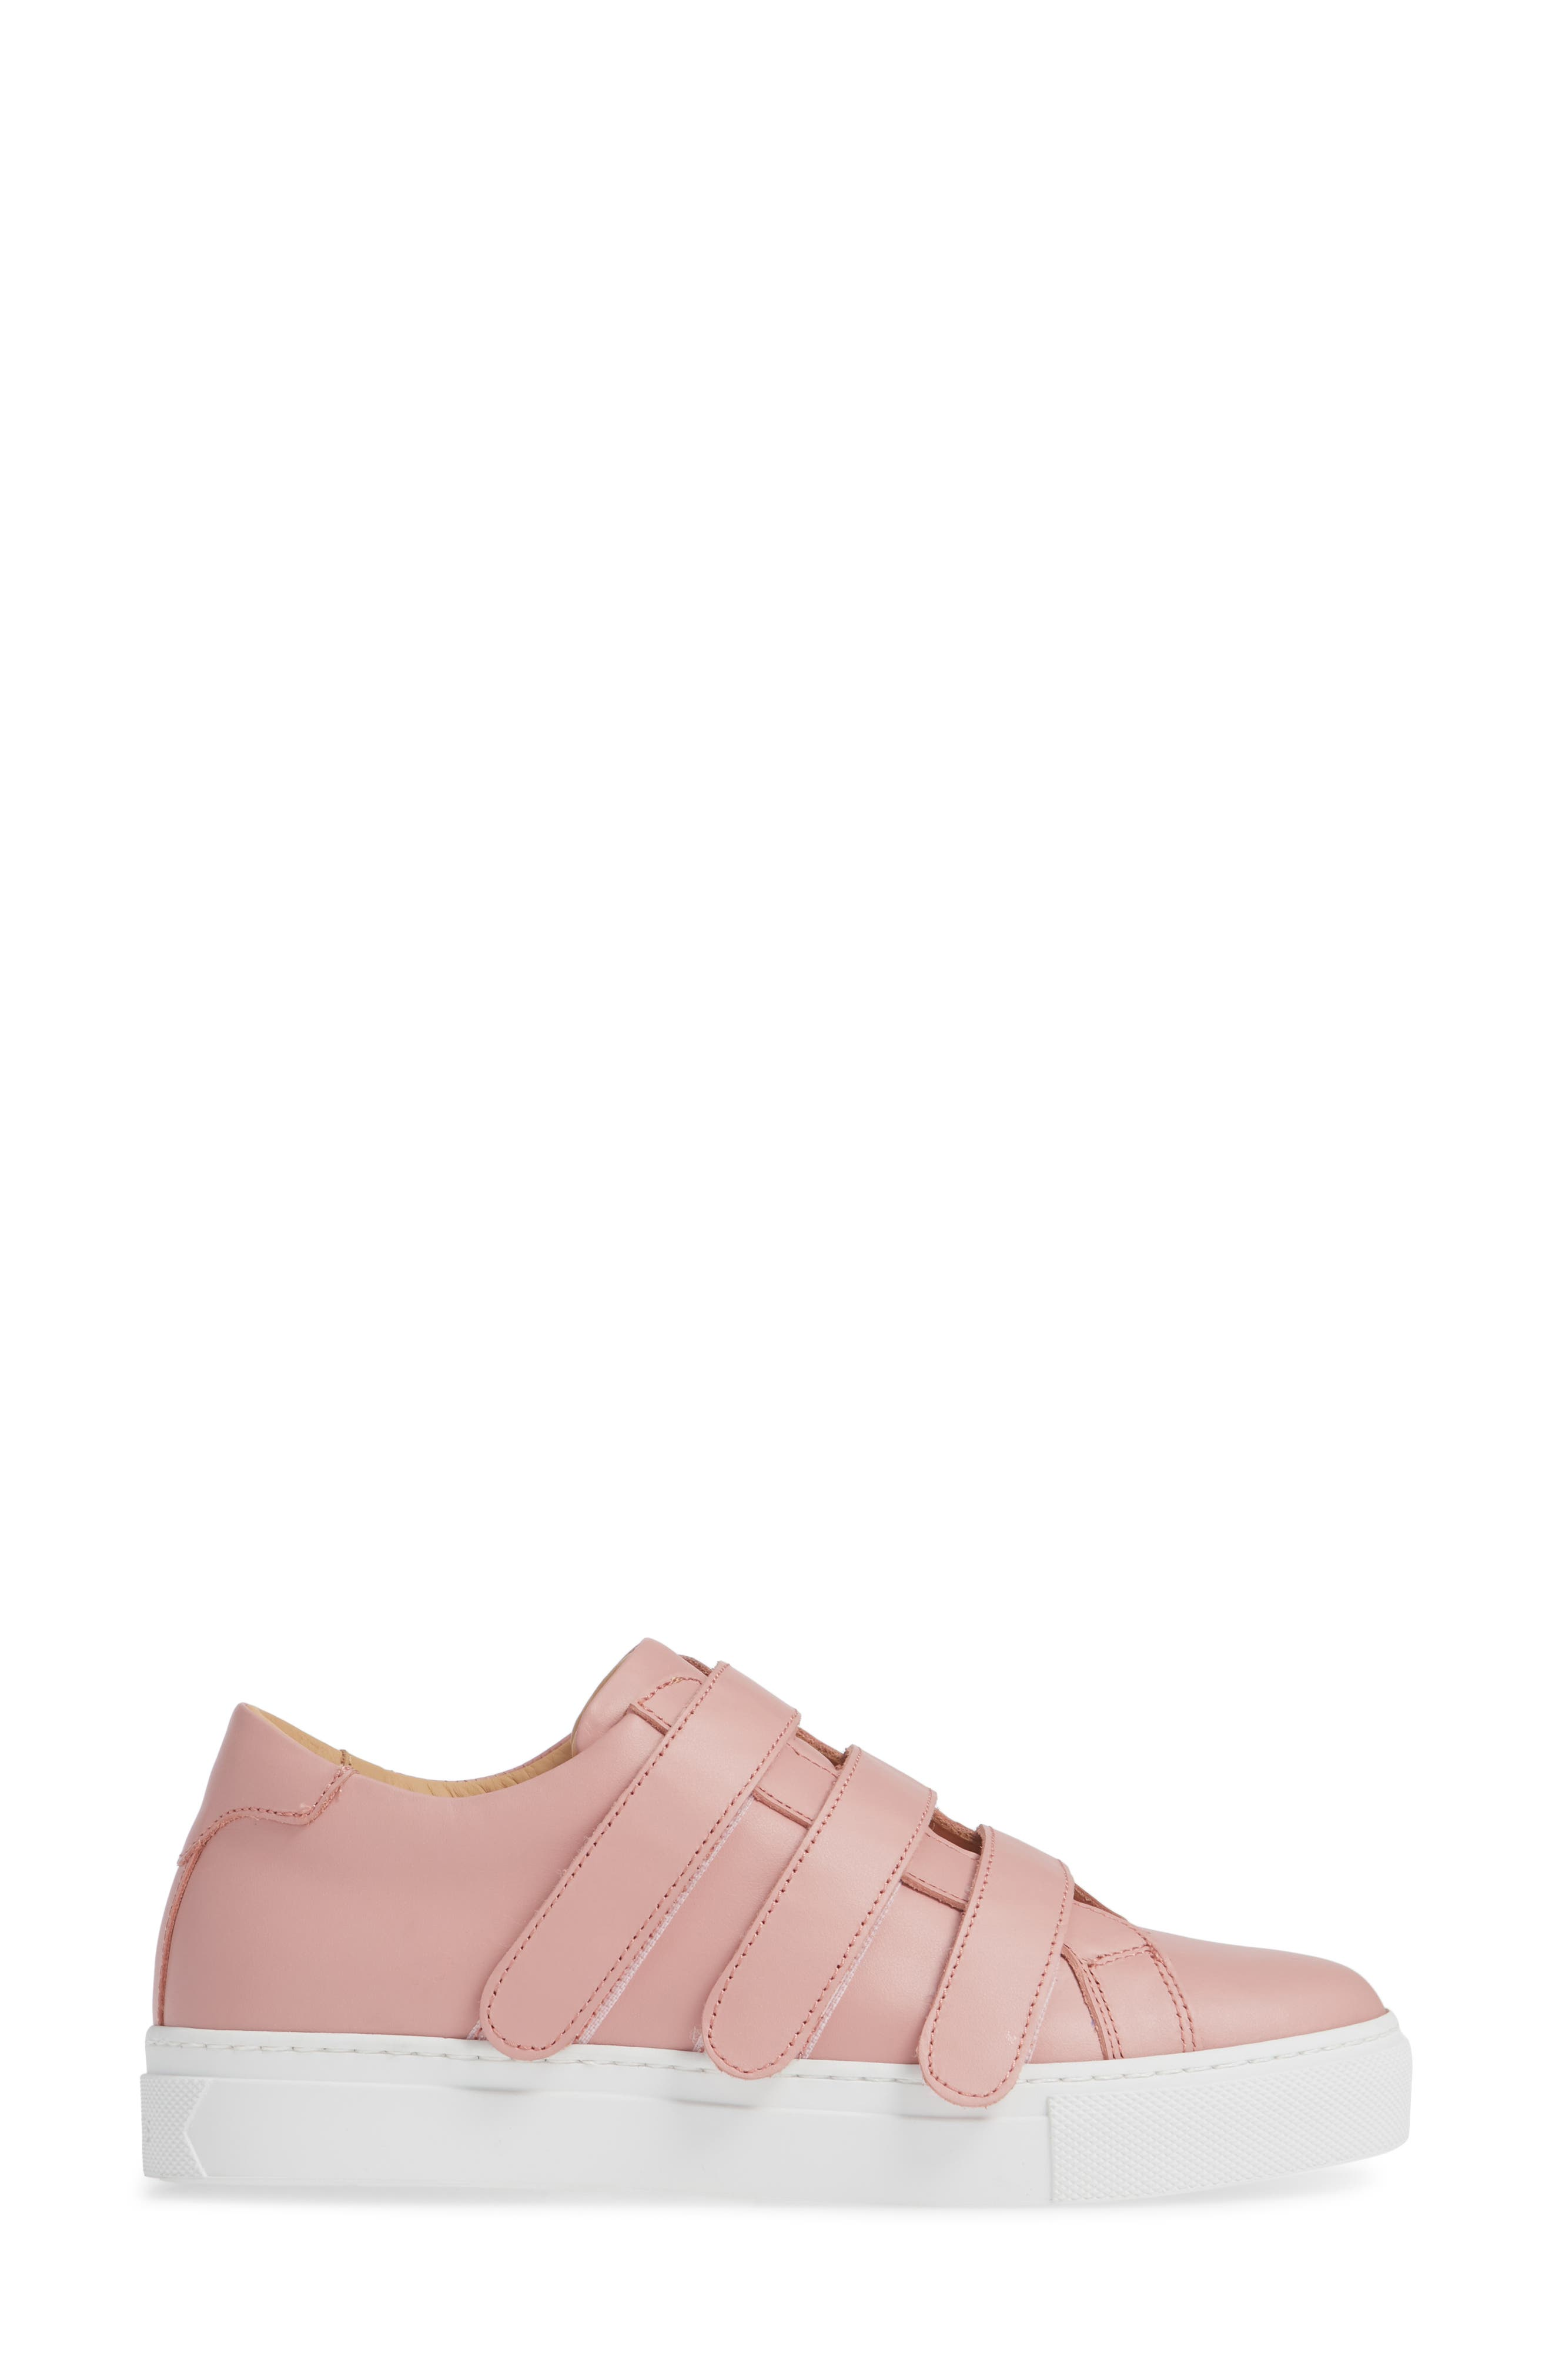 Nick Wooster x GREATS Wooster Royale Sneaker,                             Alternate thumbnail 3, color,                             651